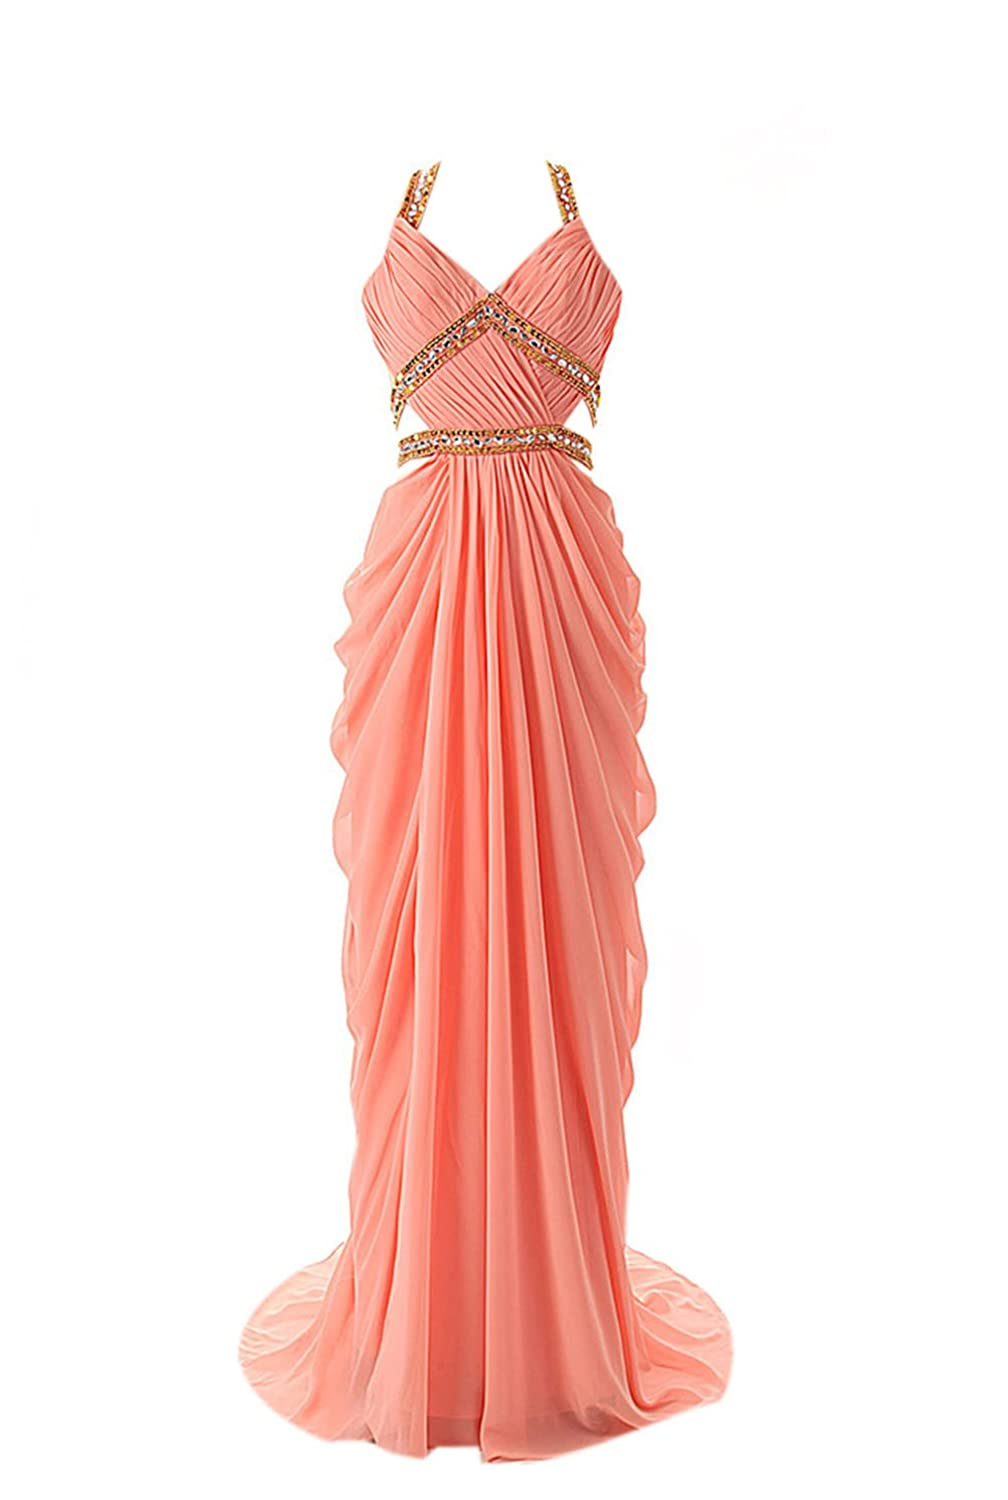 AngelDragon Sexy Halter Beading Ruffles Long Chiffon Party Dress Ball Gowns